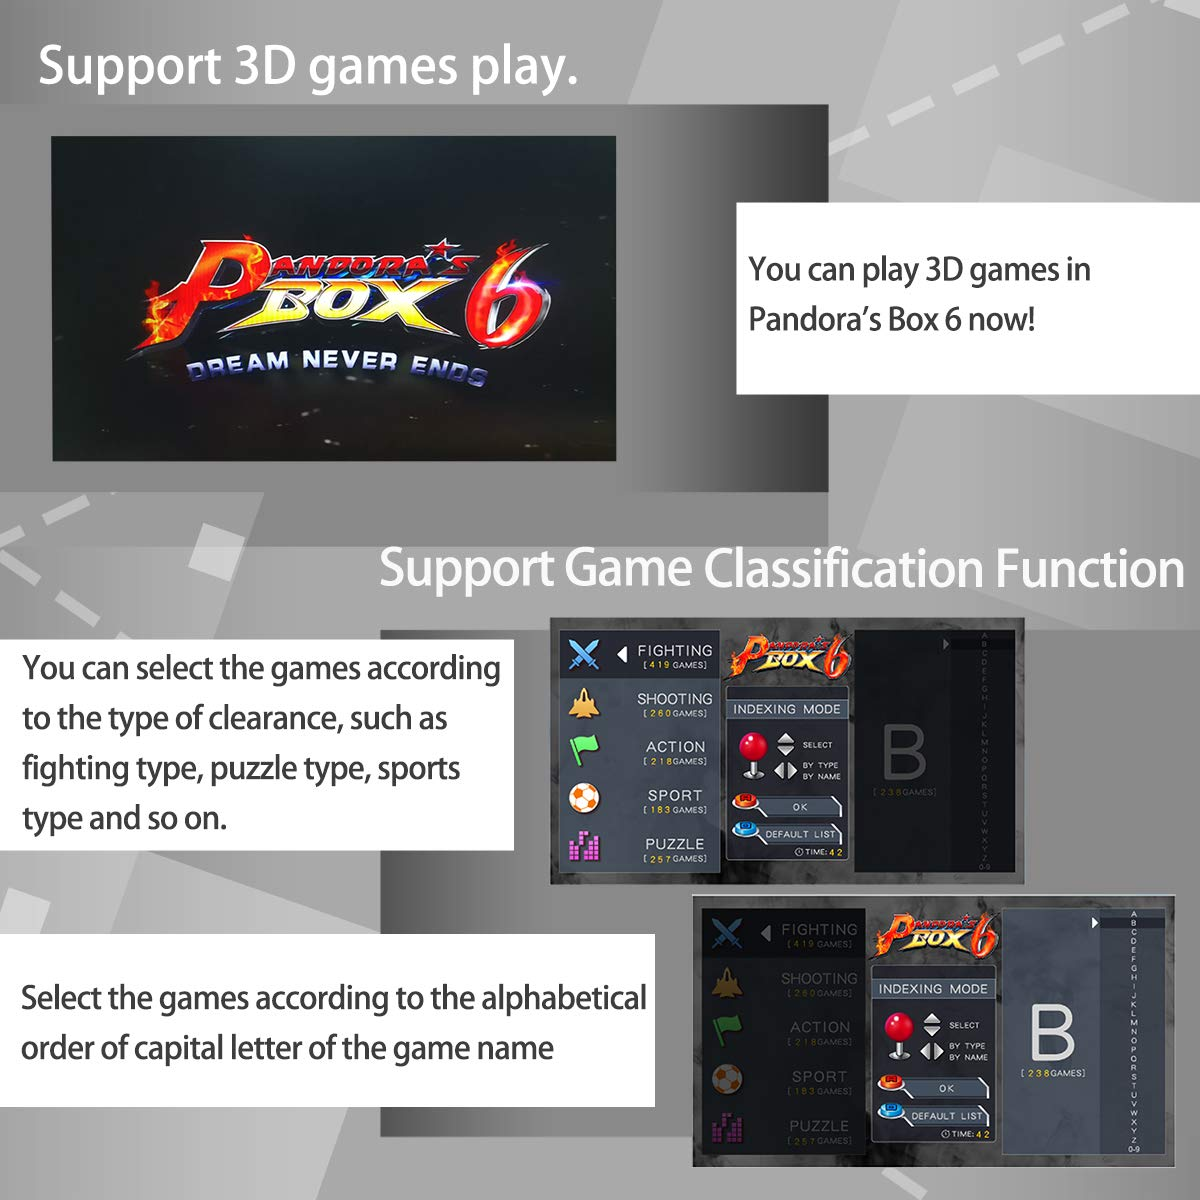 Wisamic Real Pandora's Box 6 Arcade Game Console - Add Additional Games, Support 3D Games, with Full HD, Games Classification, Upgraded CPU, Support PS3 PC TV 2 Players, No Games Included (6 Buttons) by Wisamic (Image #3)